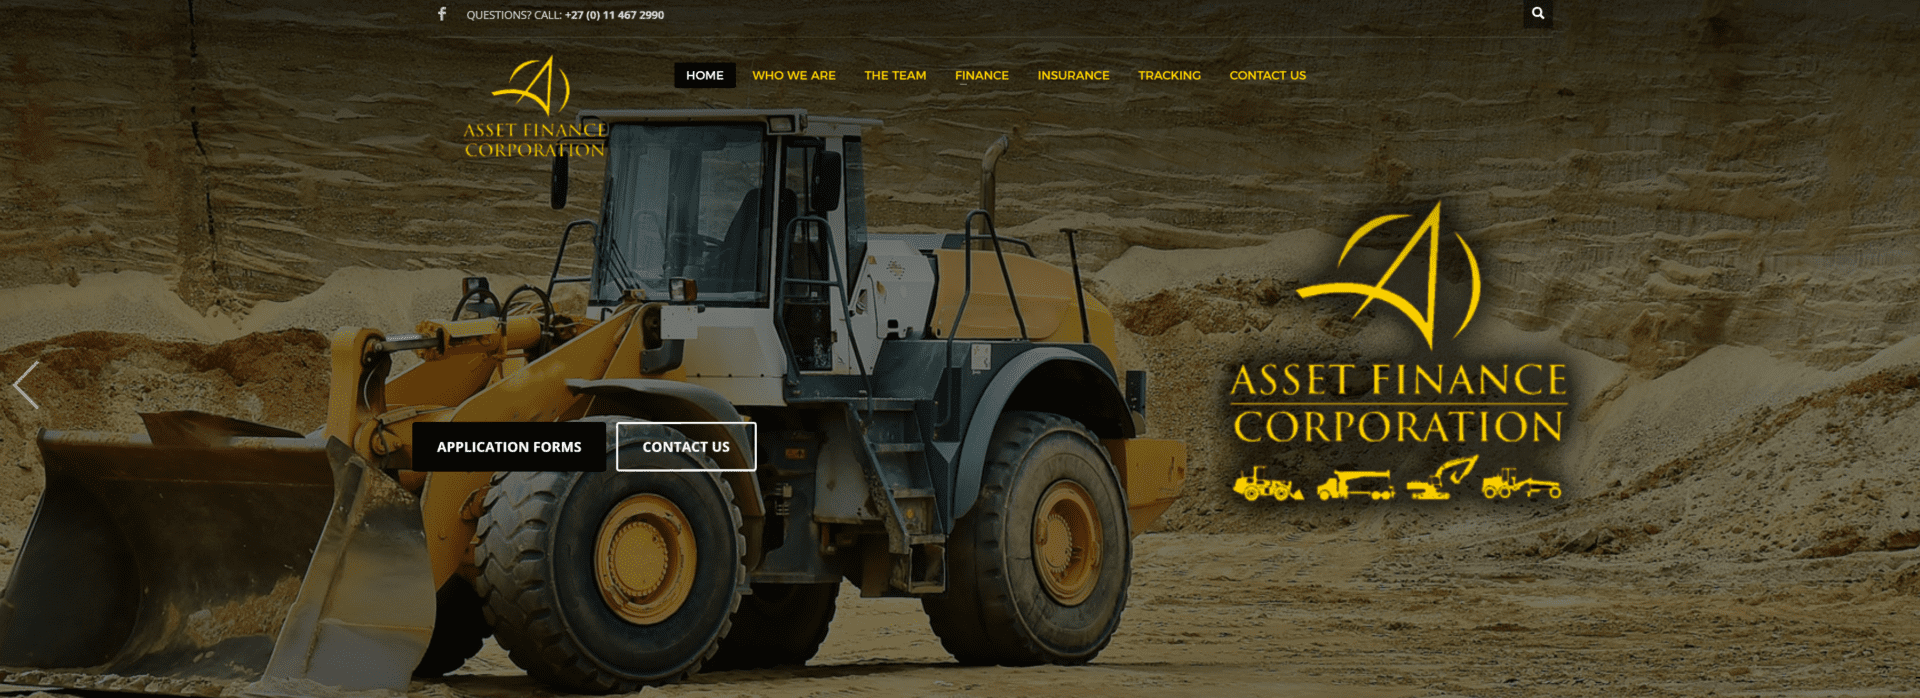 Asset Finance Corporation, AOM, Digital Marketing Agency, Recent Work